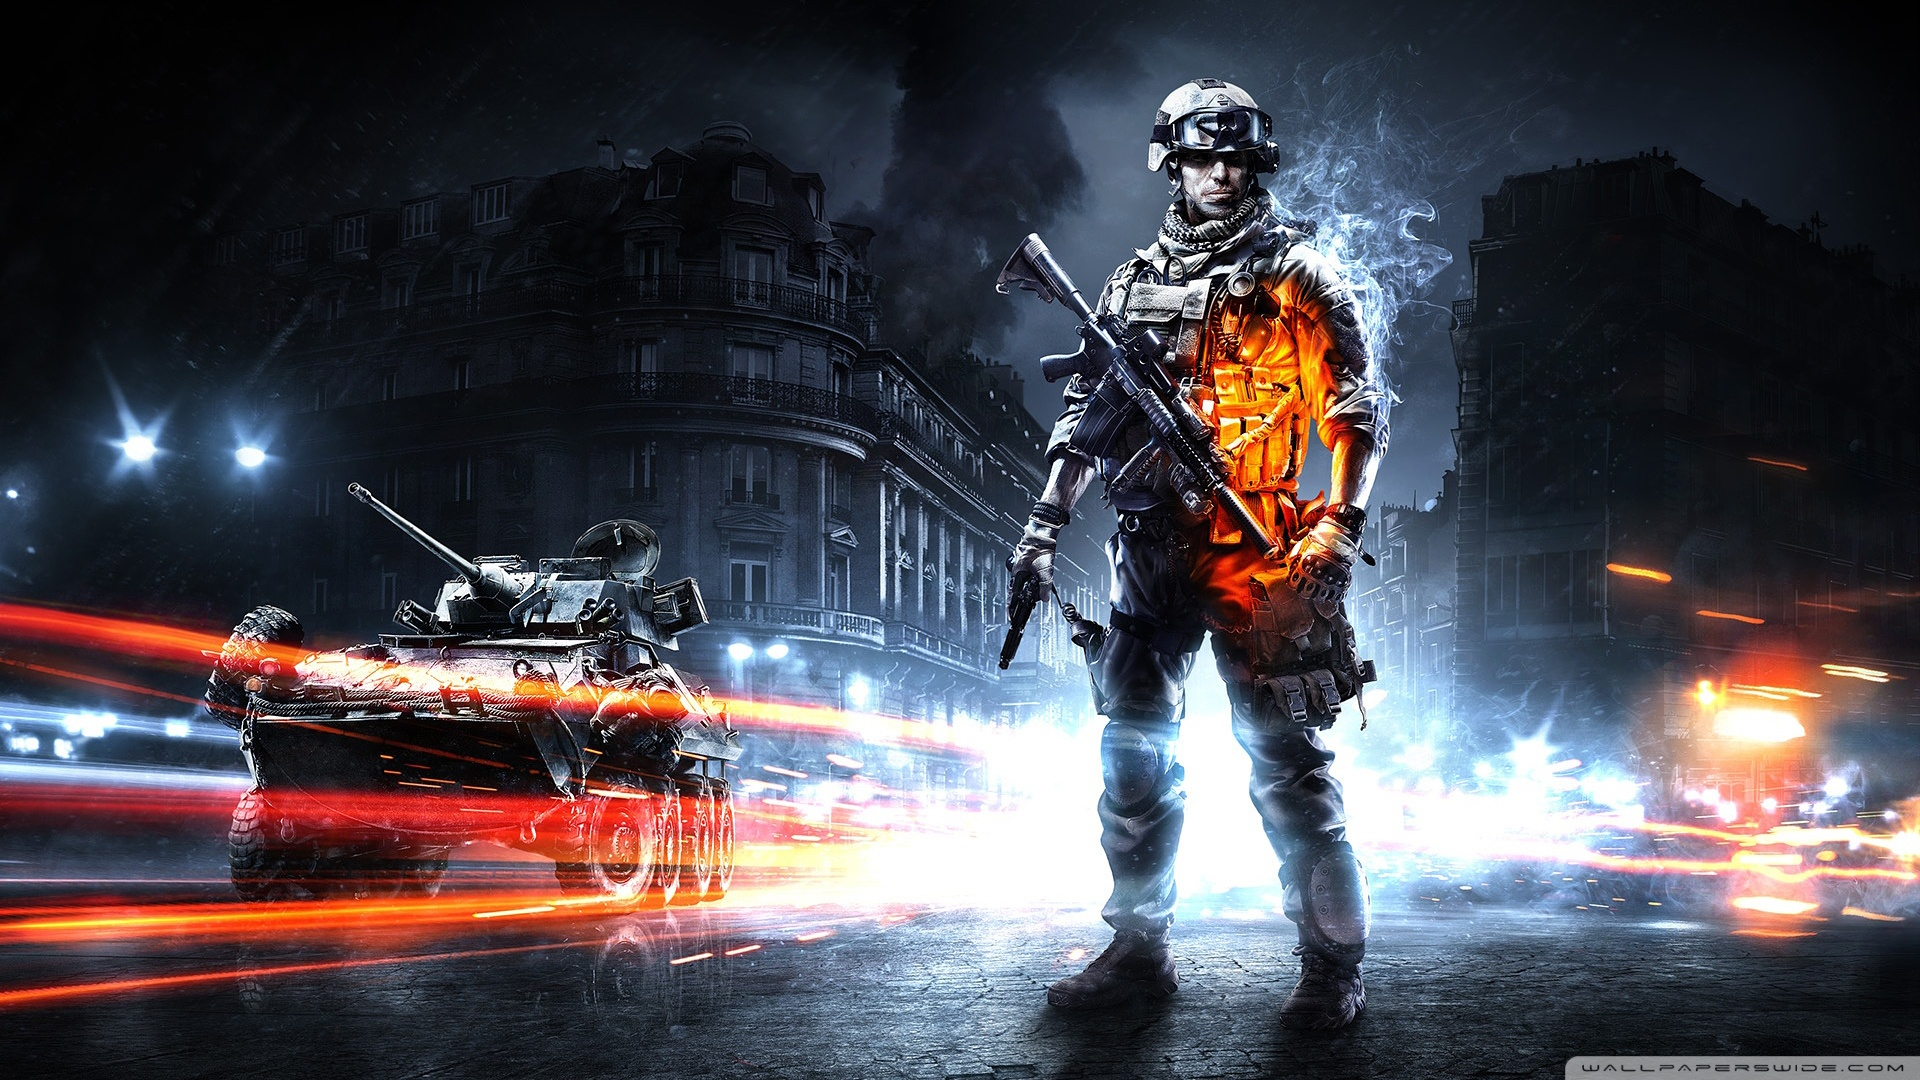 bf3 amazing hd wallpaper image - frostbite 2 - mod db